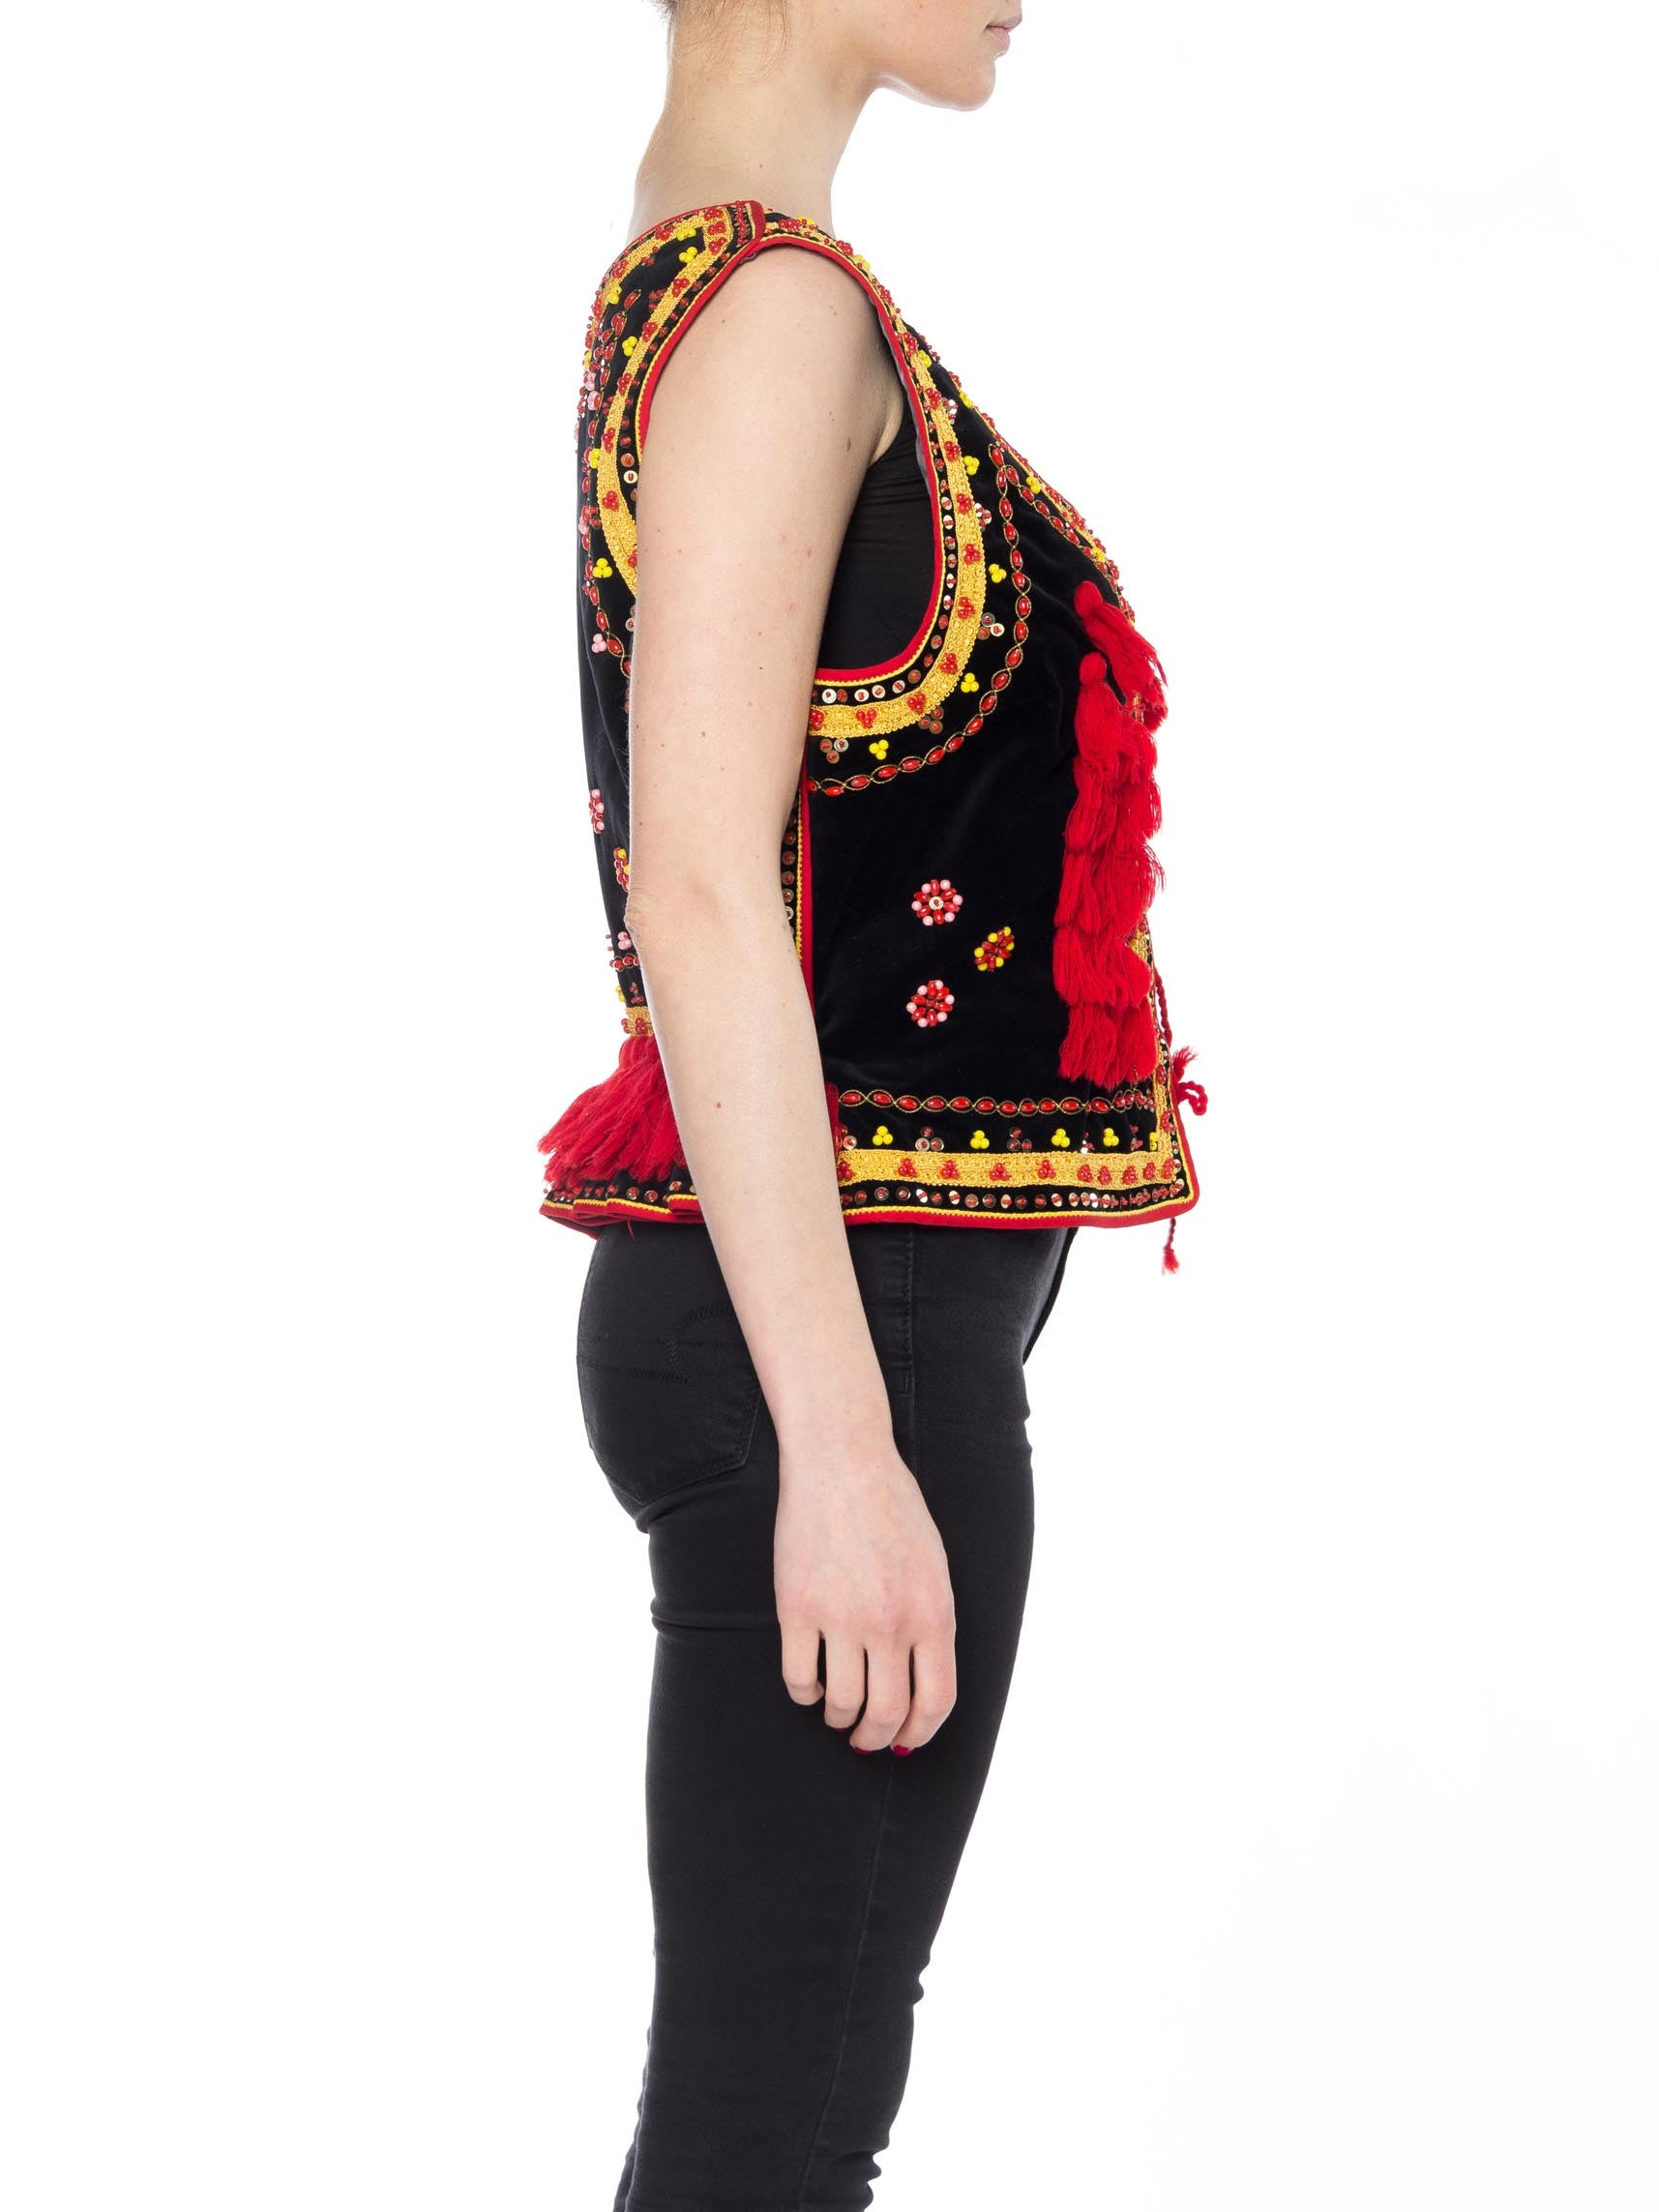 1970S Black Cotton Velvet Eastern European Lace-Up Front Top With Red & Gold Beading Tassels